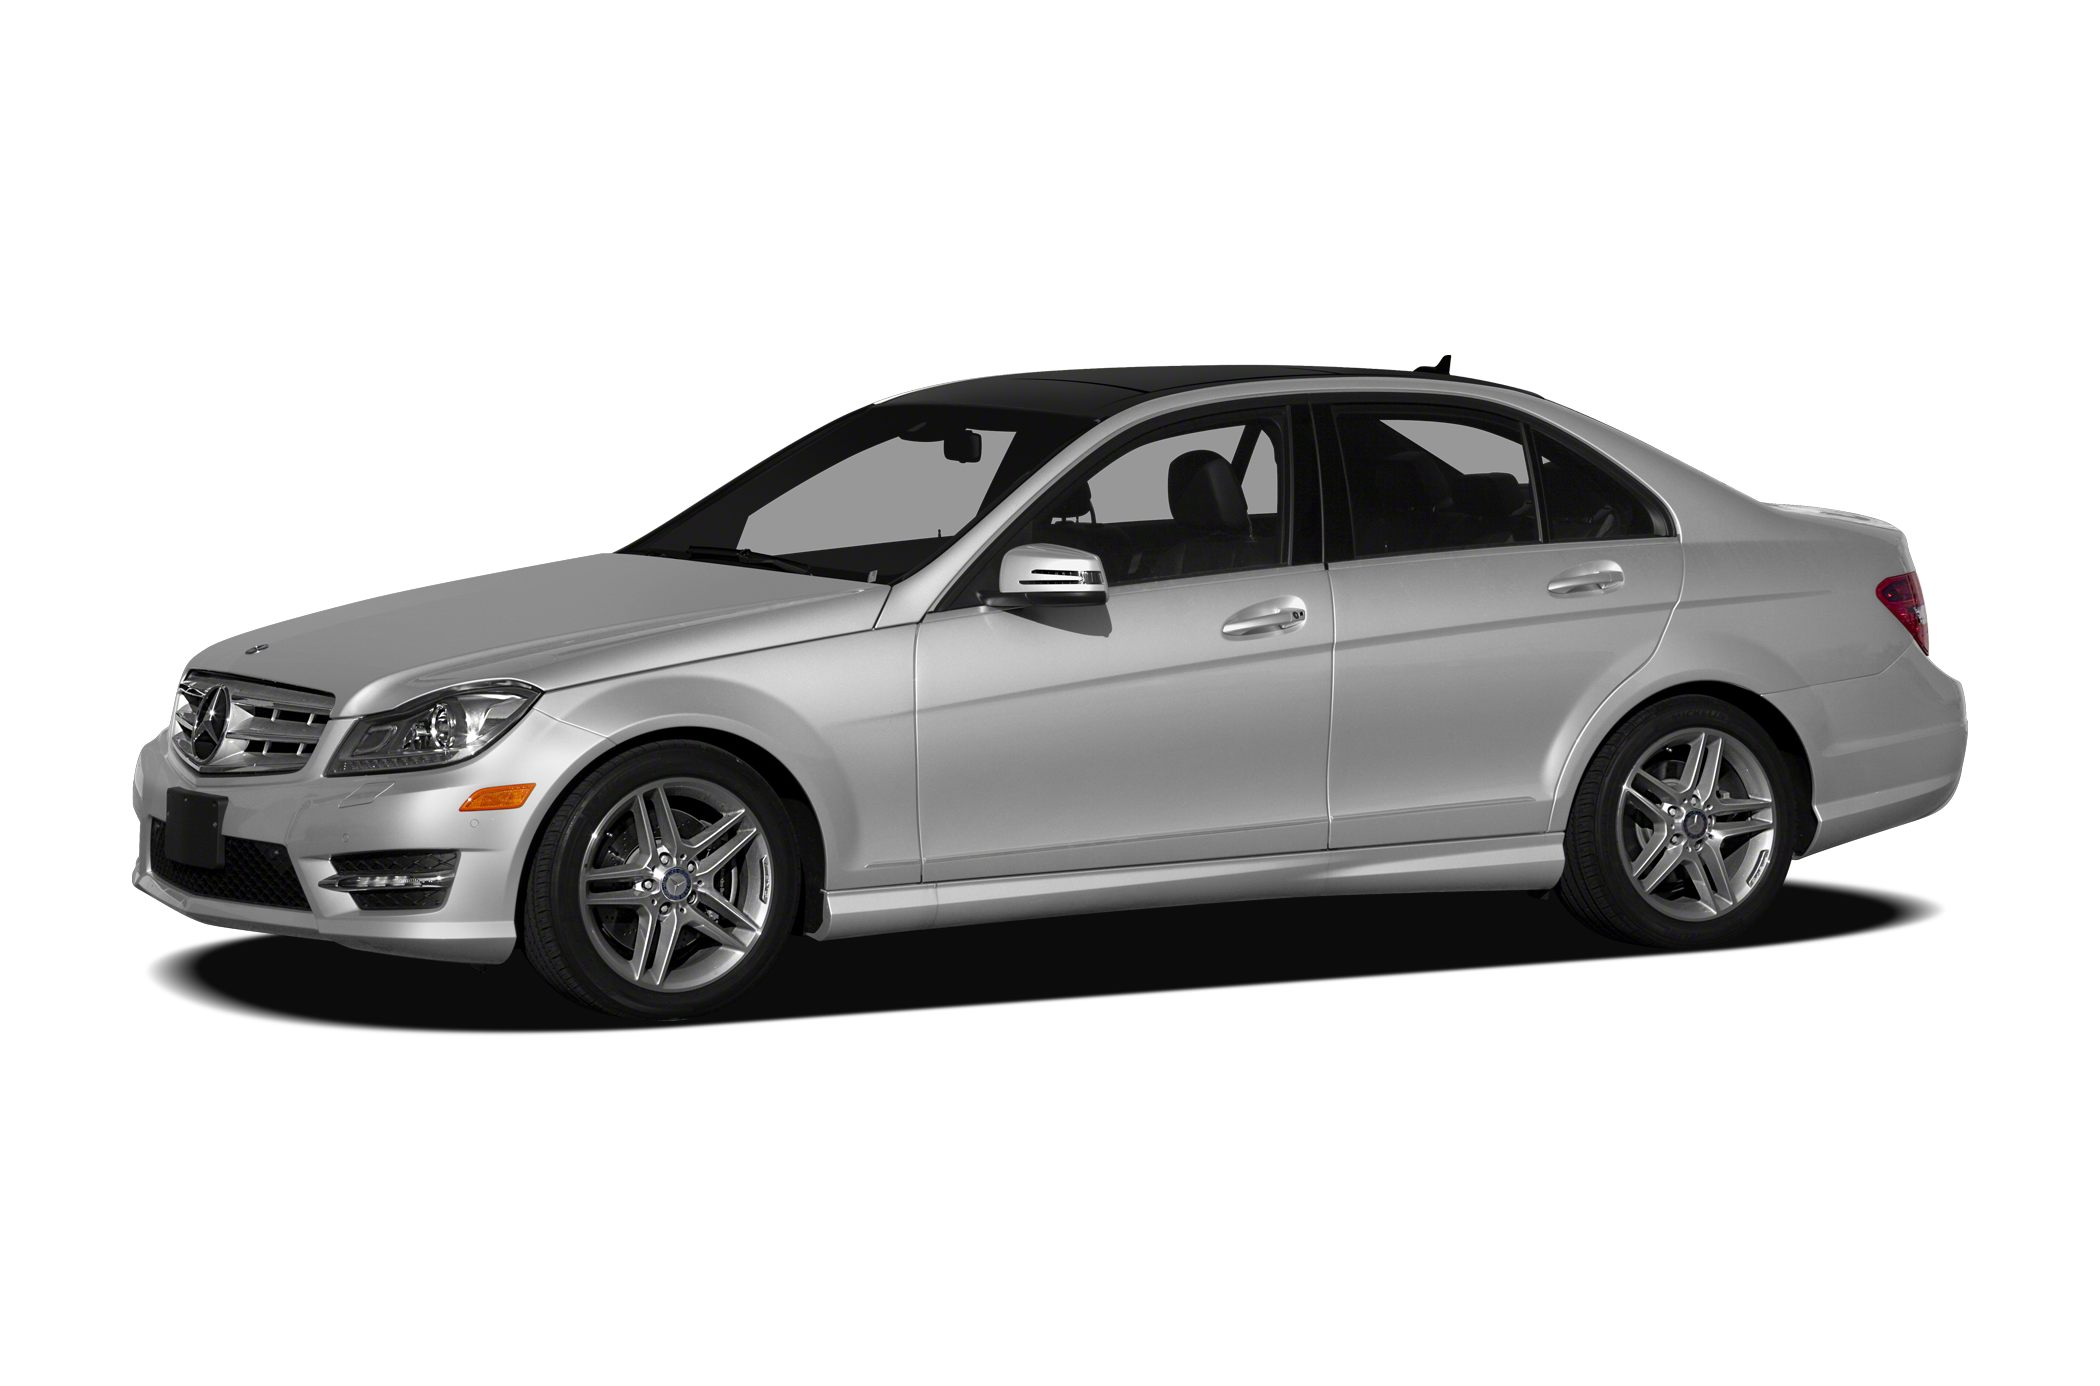 2012 MERCEDES C-Class  This fantastic Vehicle is just waiting to bring the right owner lots of joy